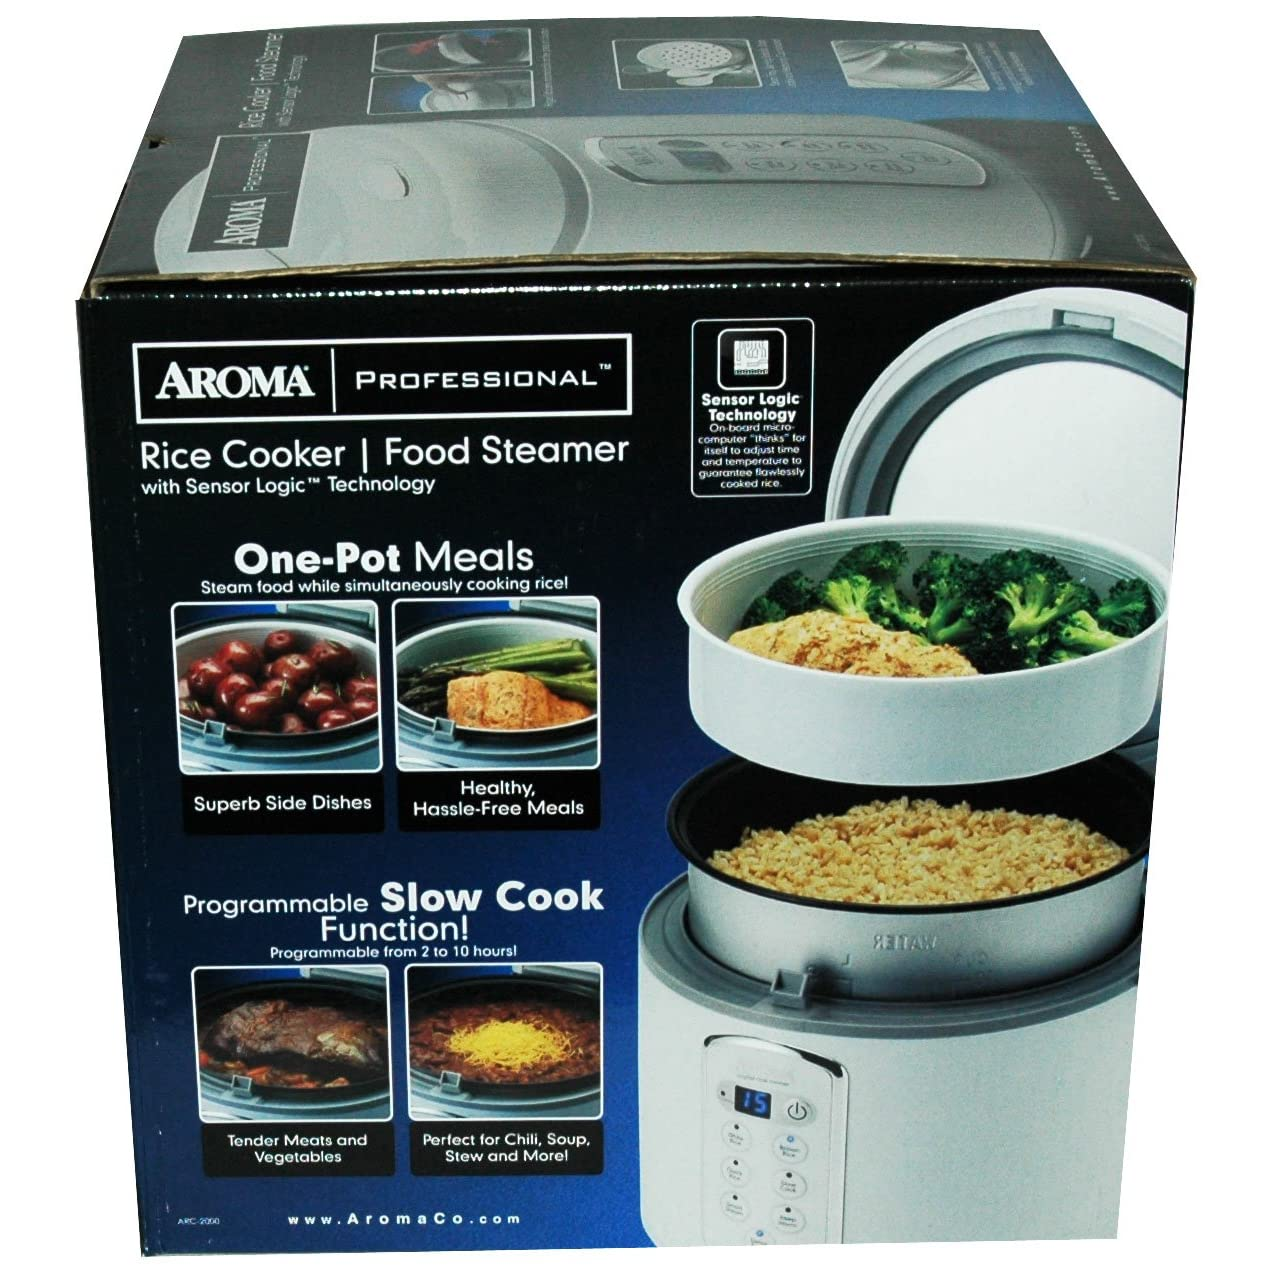 Aroma Housewares Professional Rice Cooker/Food Steamer/Slow Cooker ARC2000A Reviews